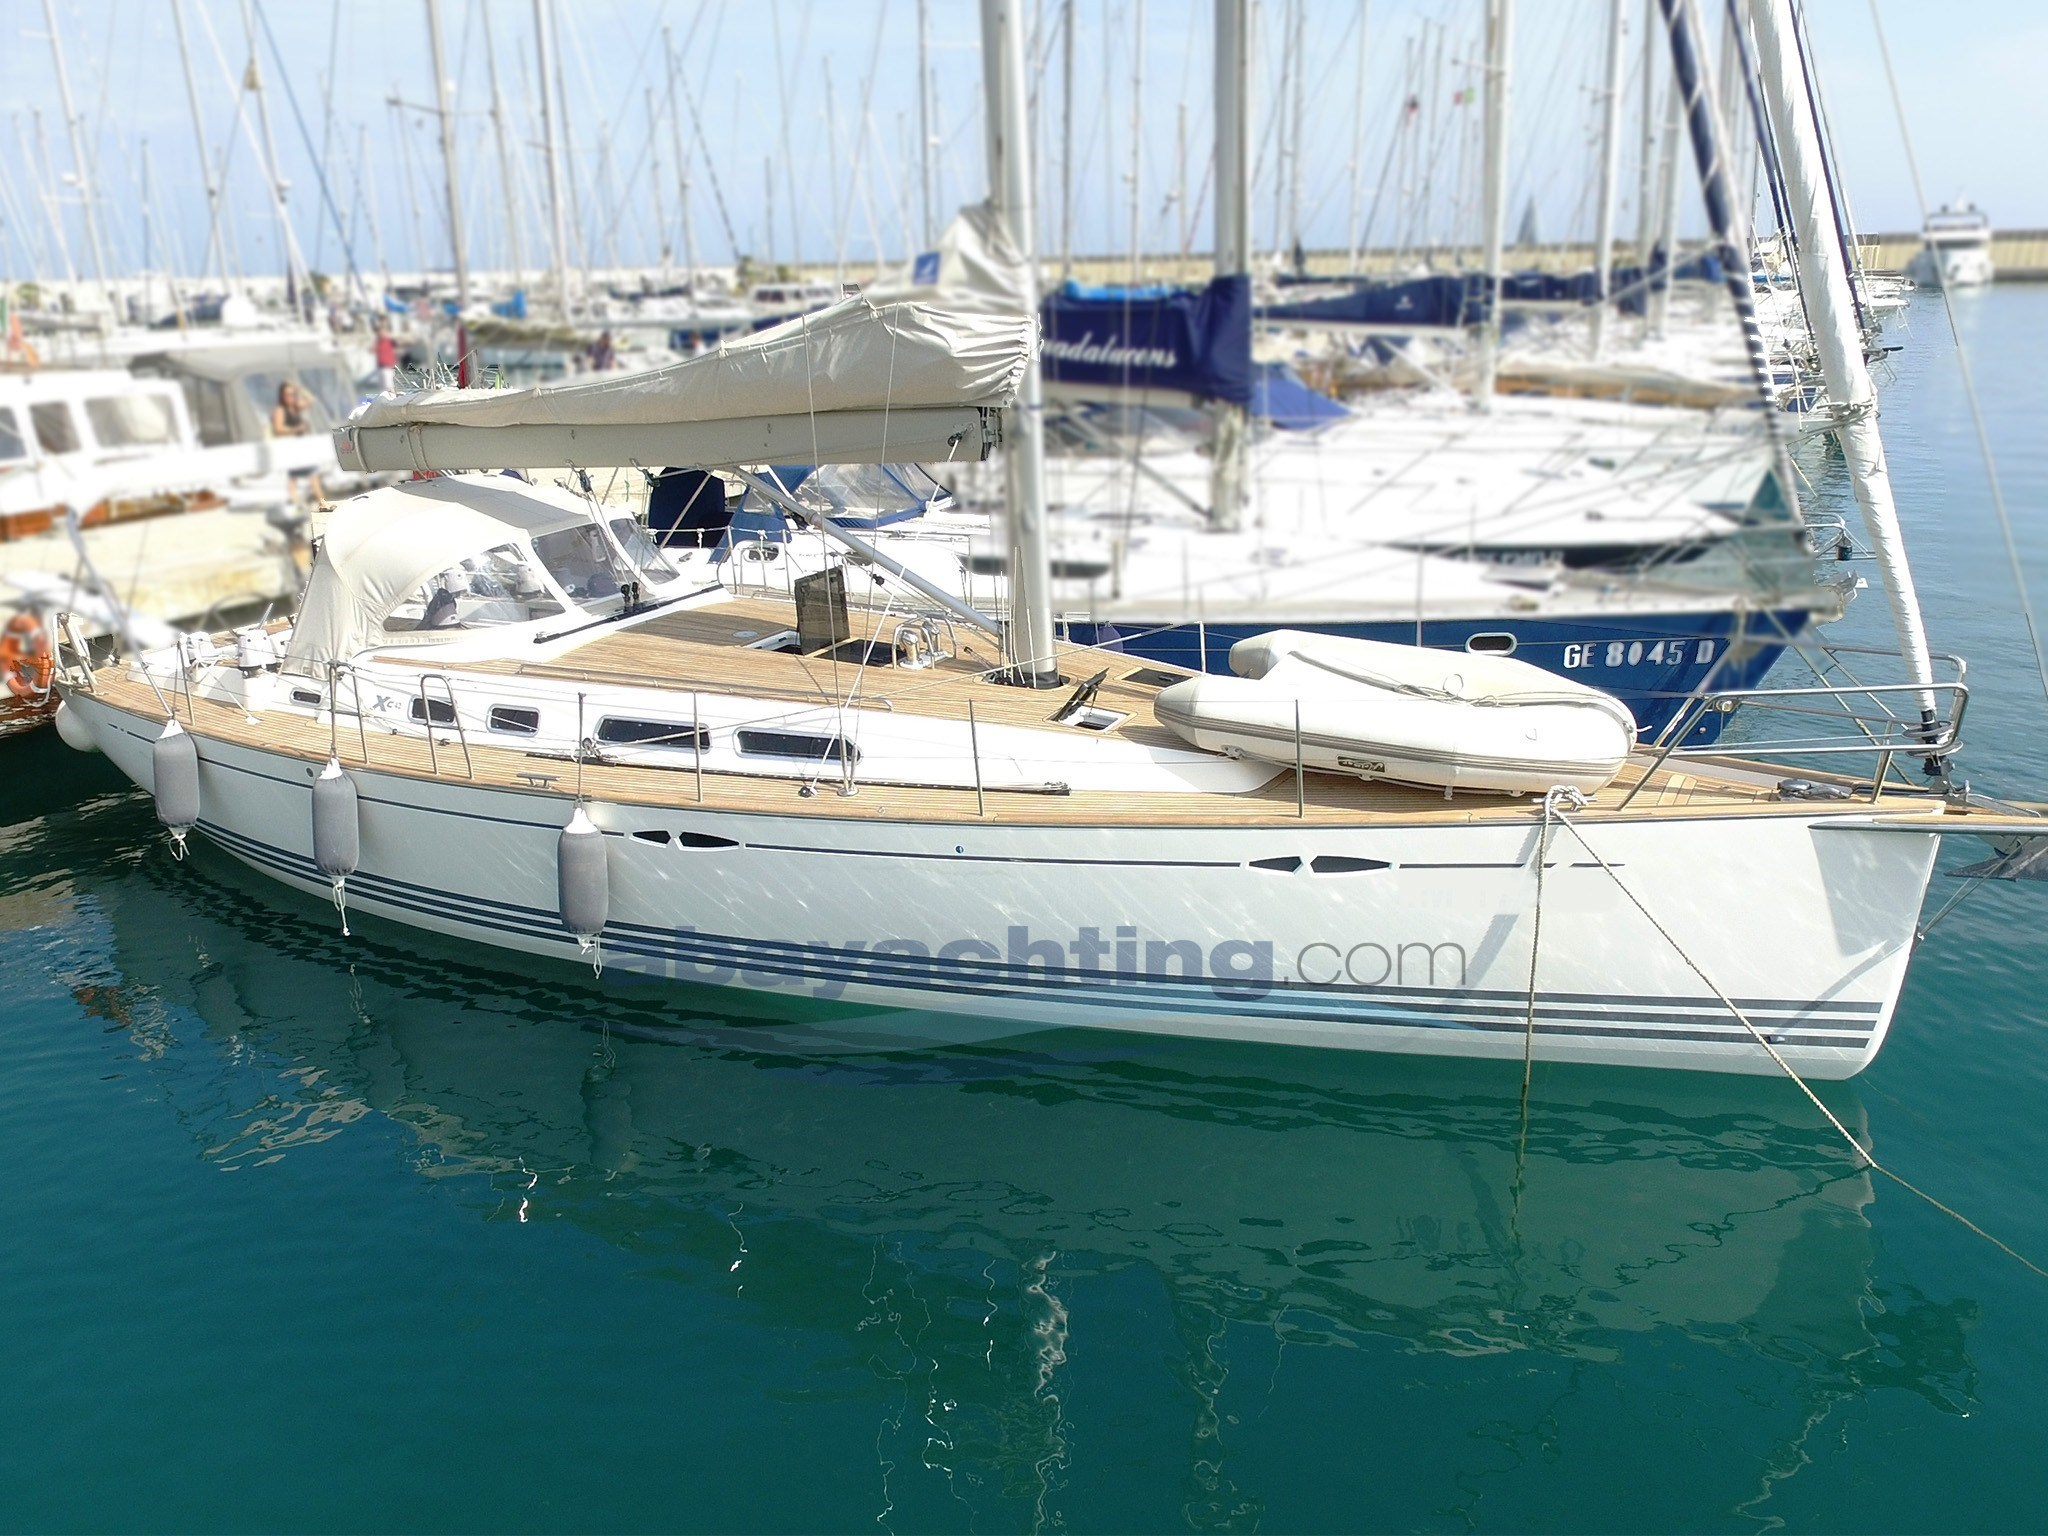 New arrival X-Yachts XC-42